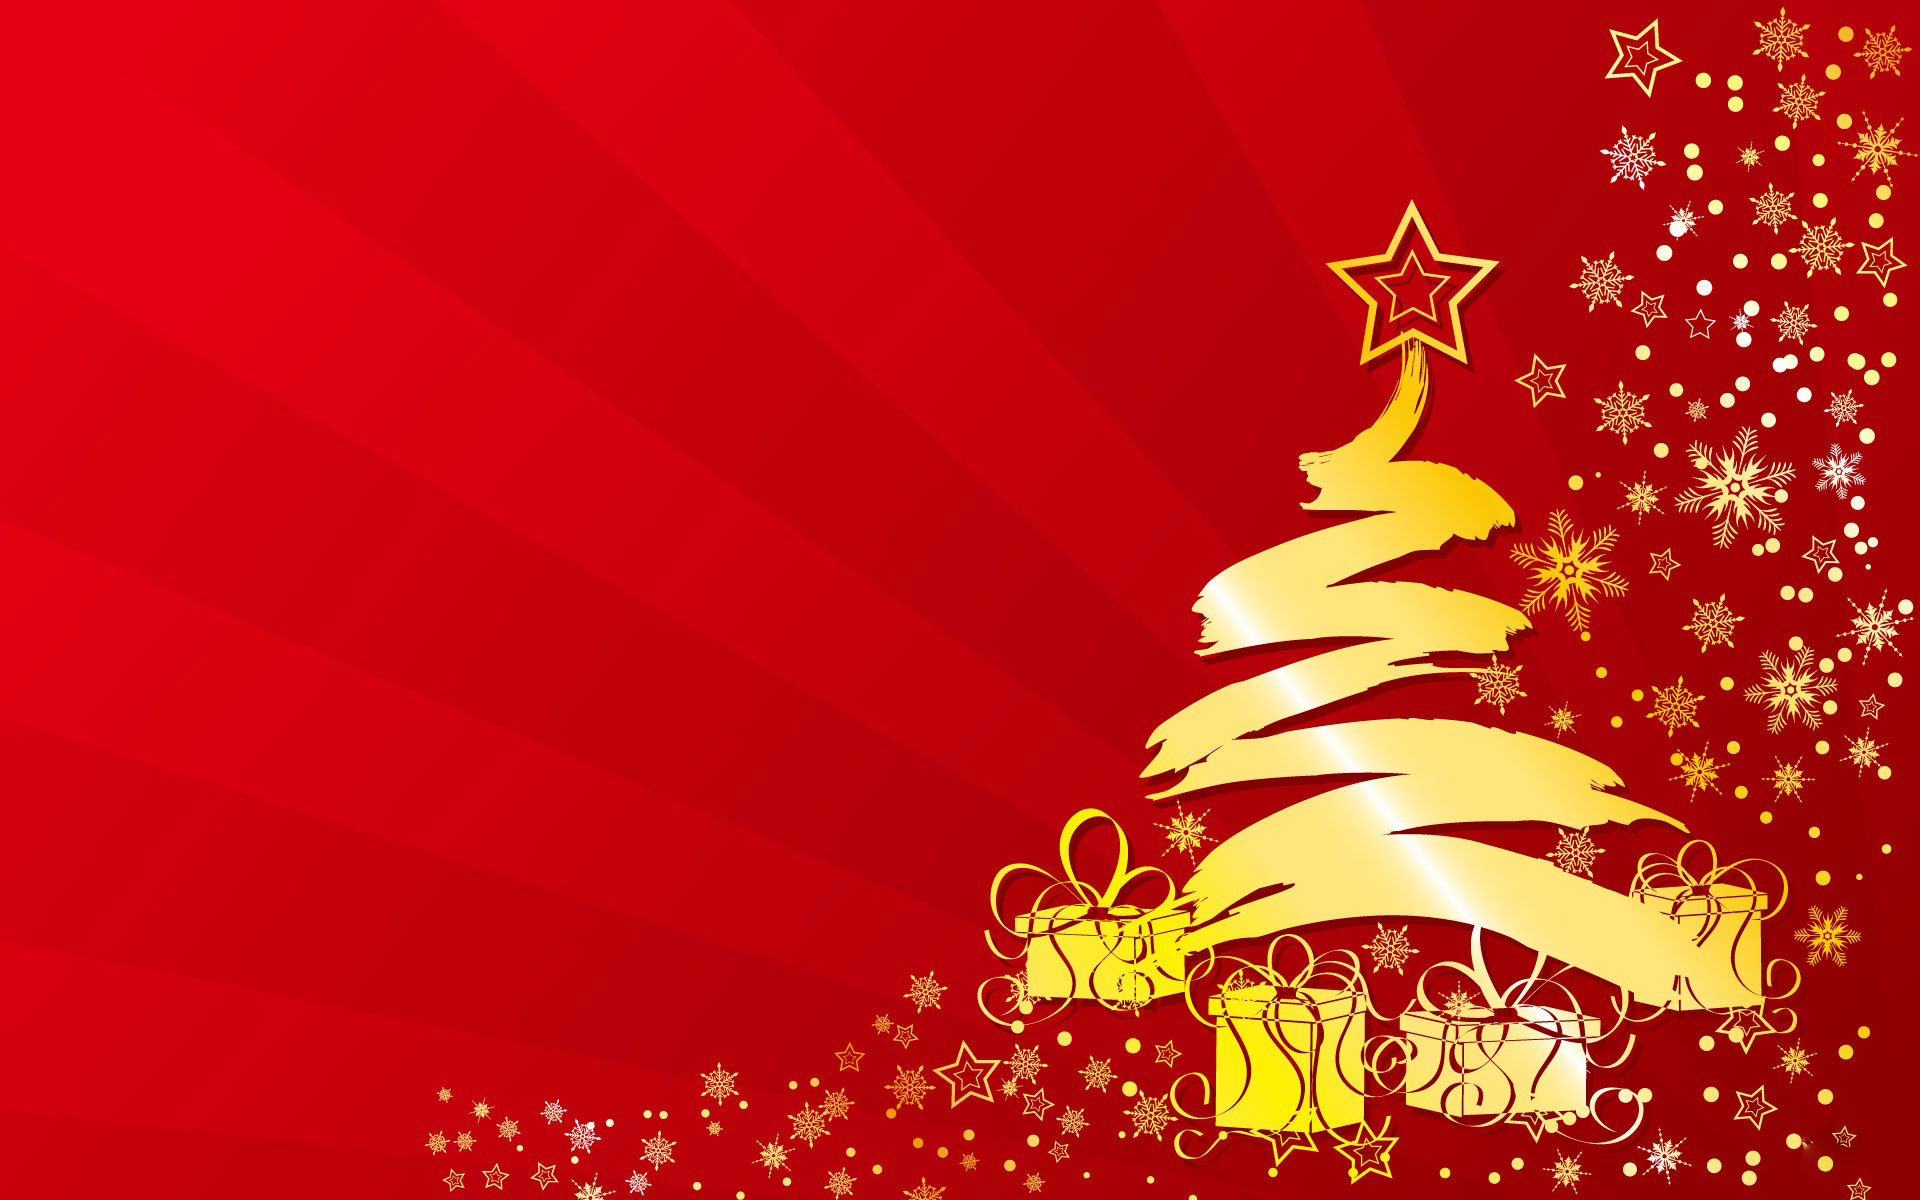 Xmas Tree HD Wallpaper